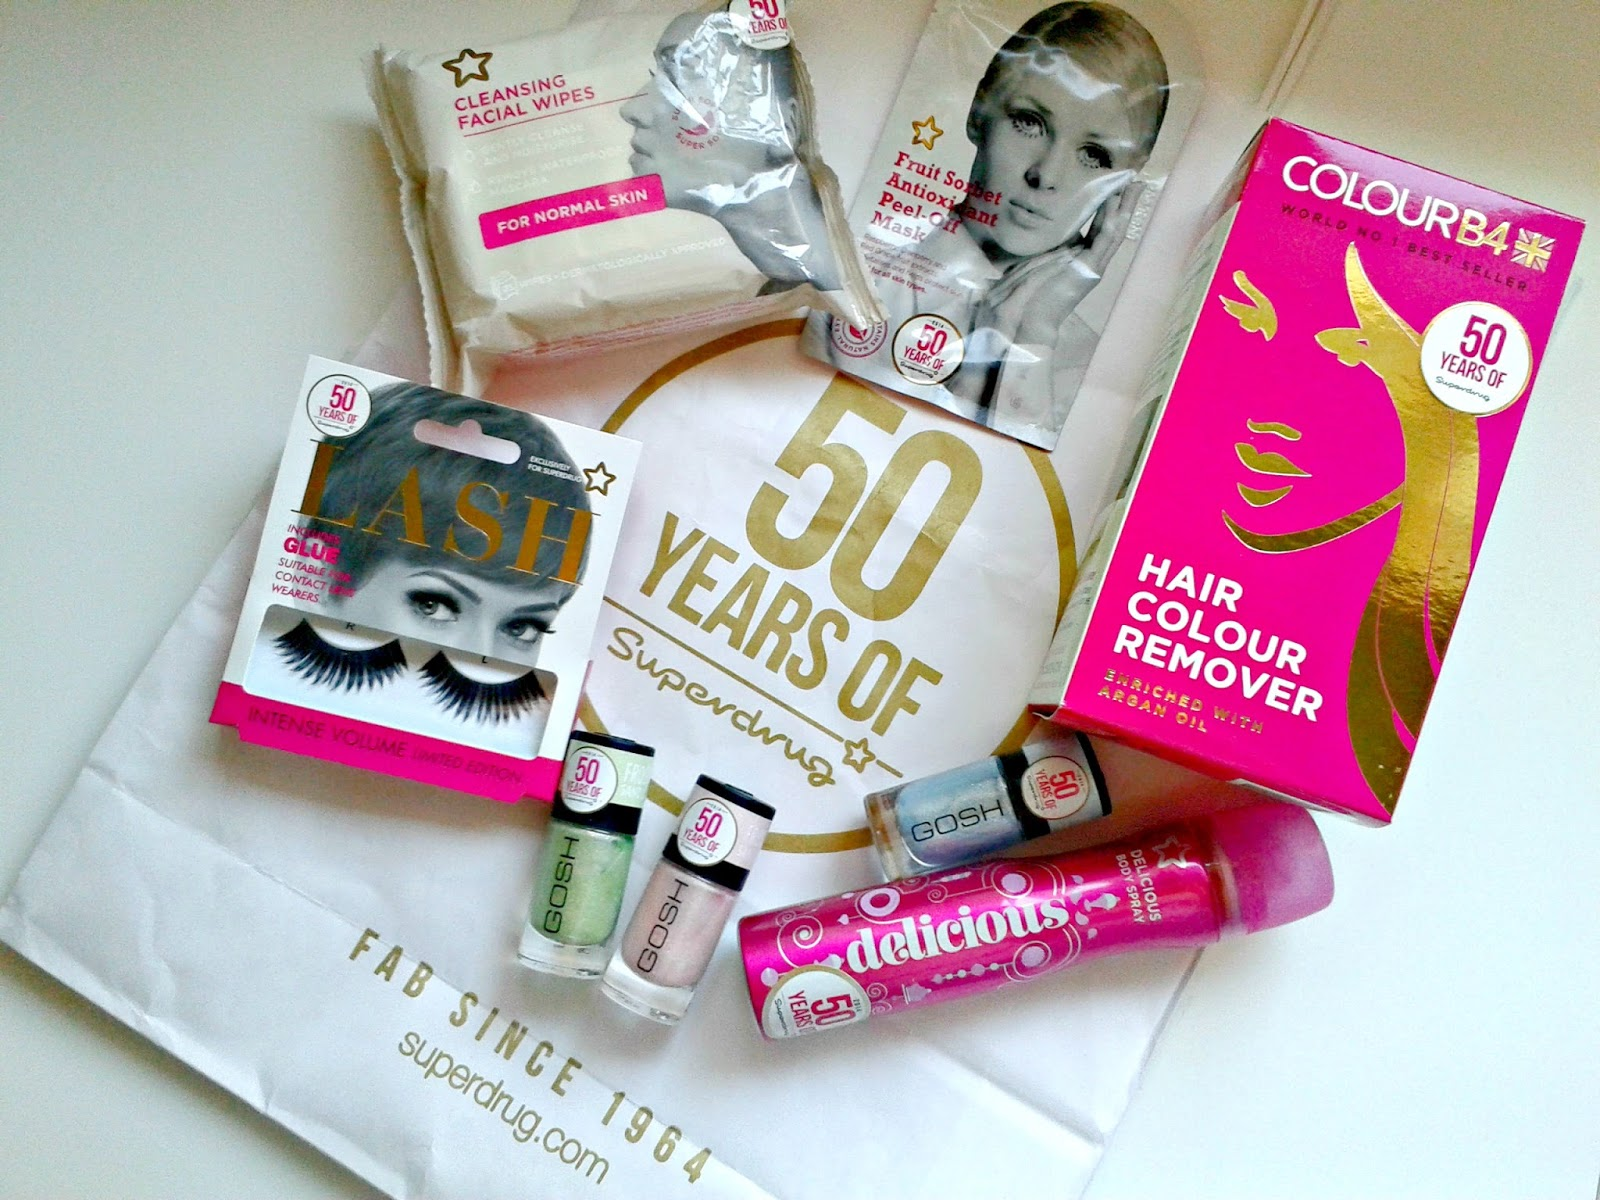 The Happy 50th Birthday Superdrug Haul 50 Years of Superdrug GOSH Nail lacquers Colour B4 Colour Remover